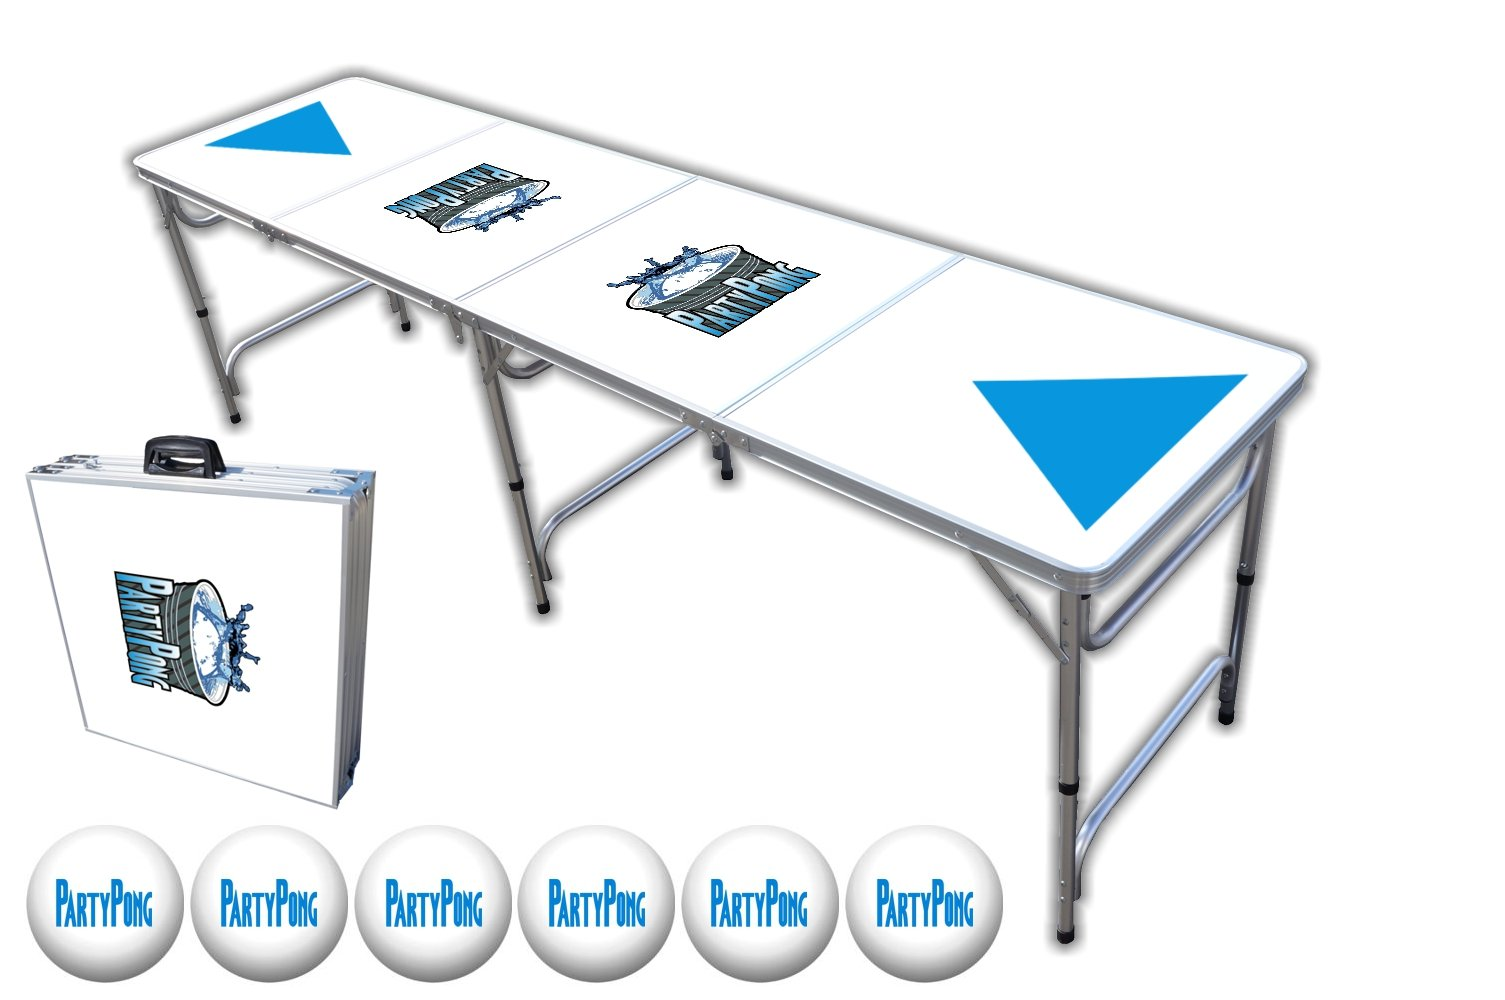 8-Foot Beer Pong Table - Party Pong Professional Edition